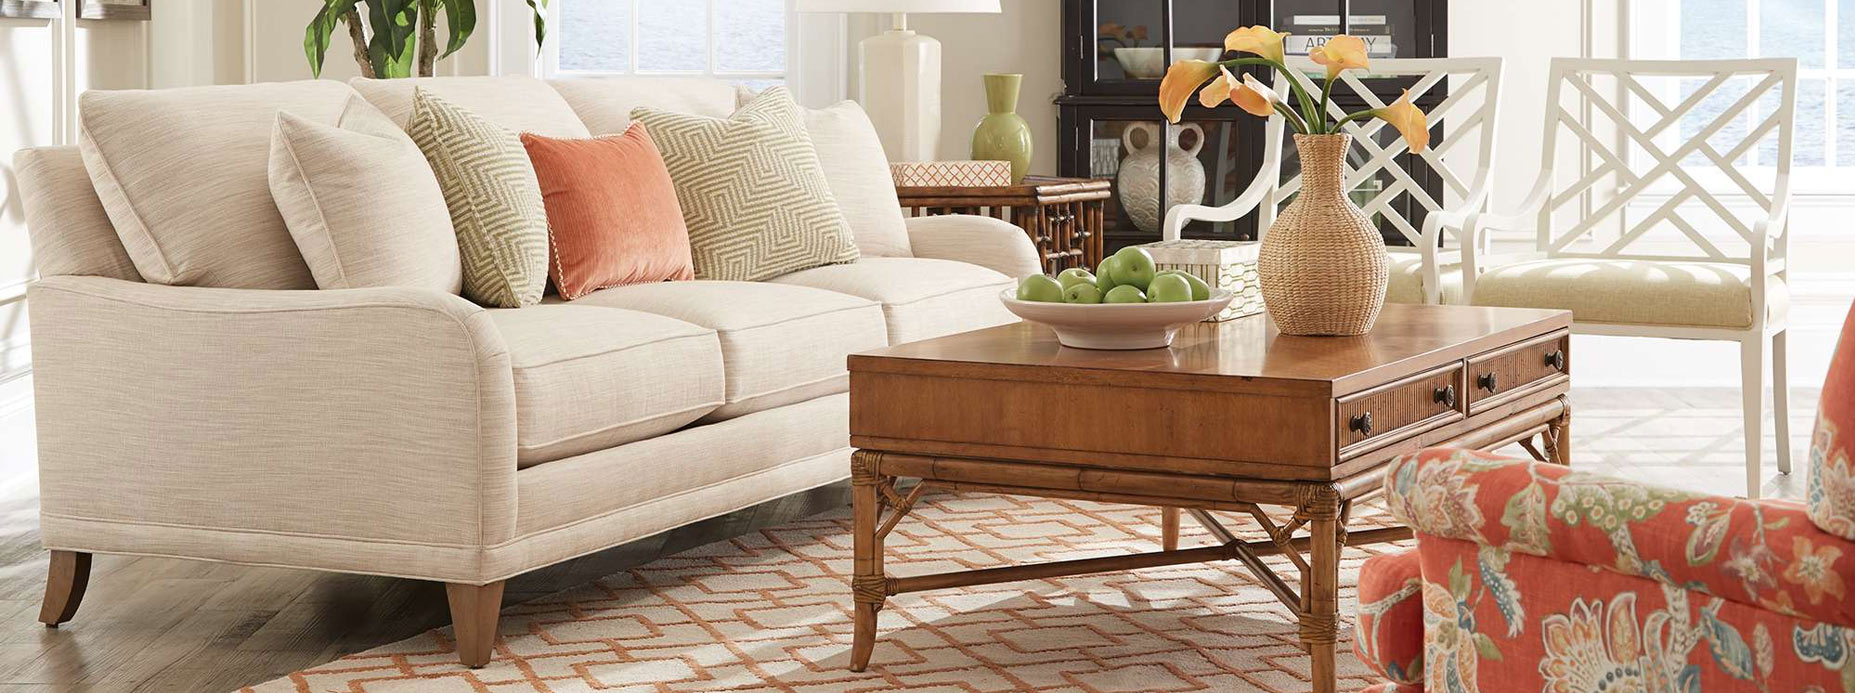 Crate and Barrel Slipcovers | Slipcovers for Sofas with Cushions Separate | Rowe Furniture Slipcovers